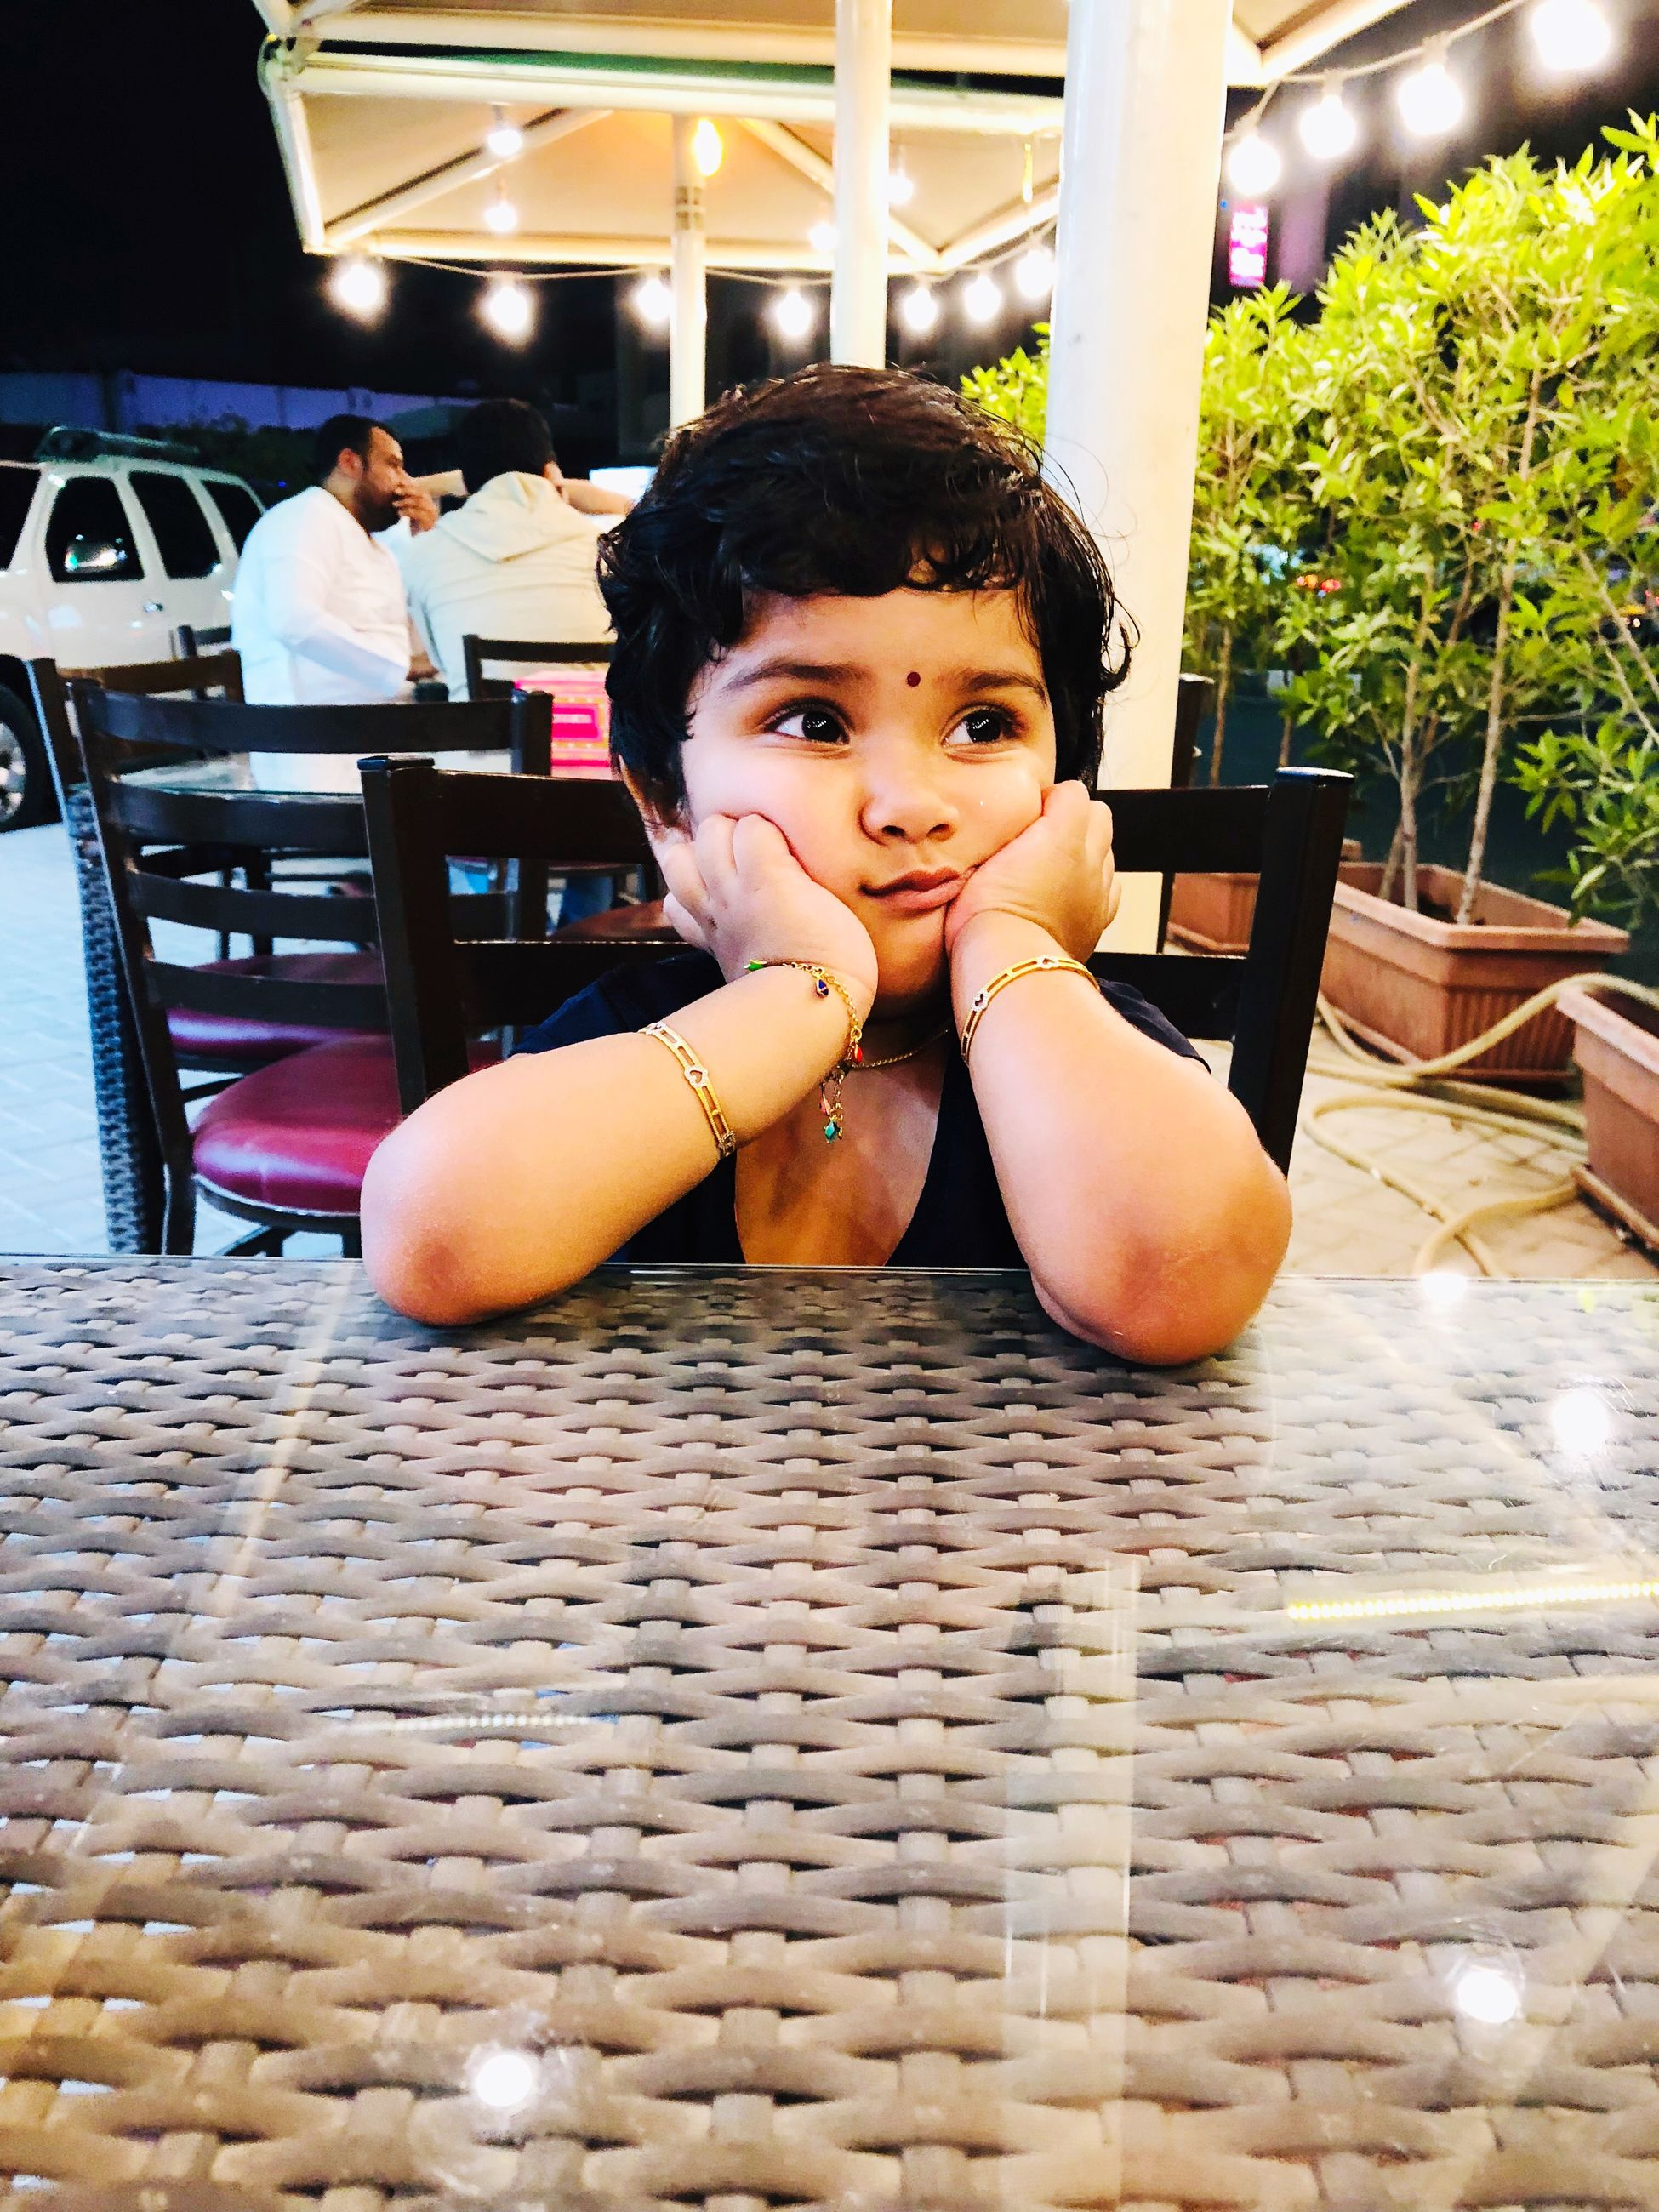 child, childhood, sitting, one person, portrait, real people, looking at camera, table, lifestyles, seat, incidental people, boys, innocence, front view, males, casual clothing, chair, men, contemplation